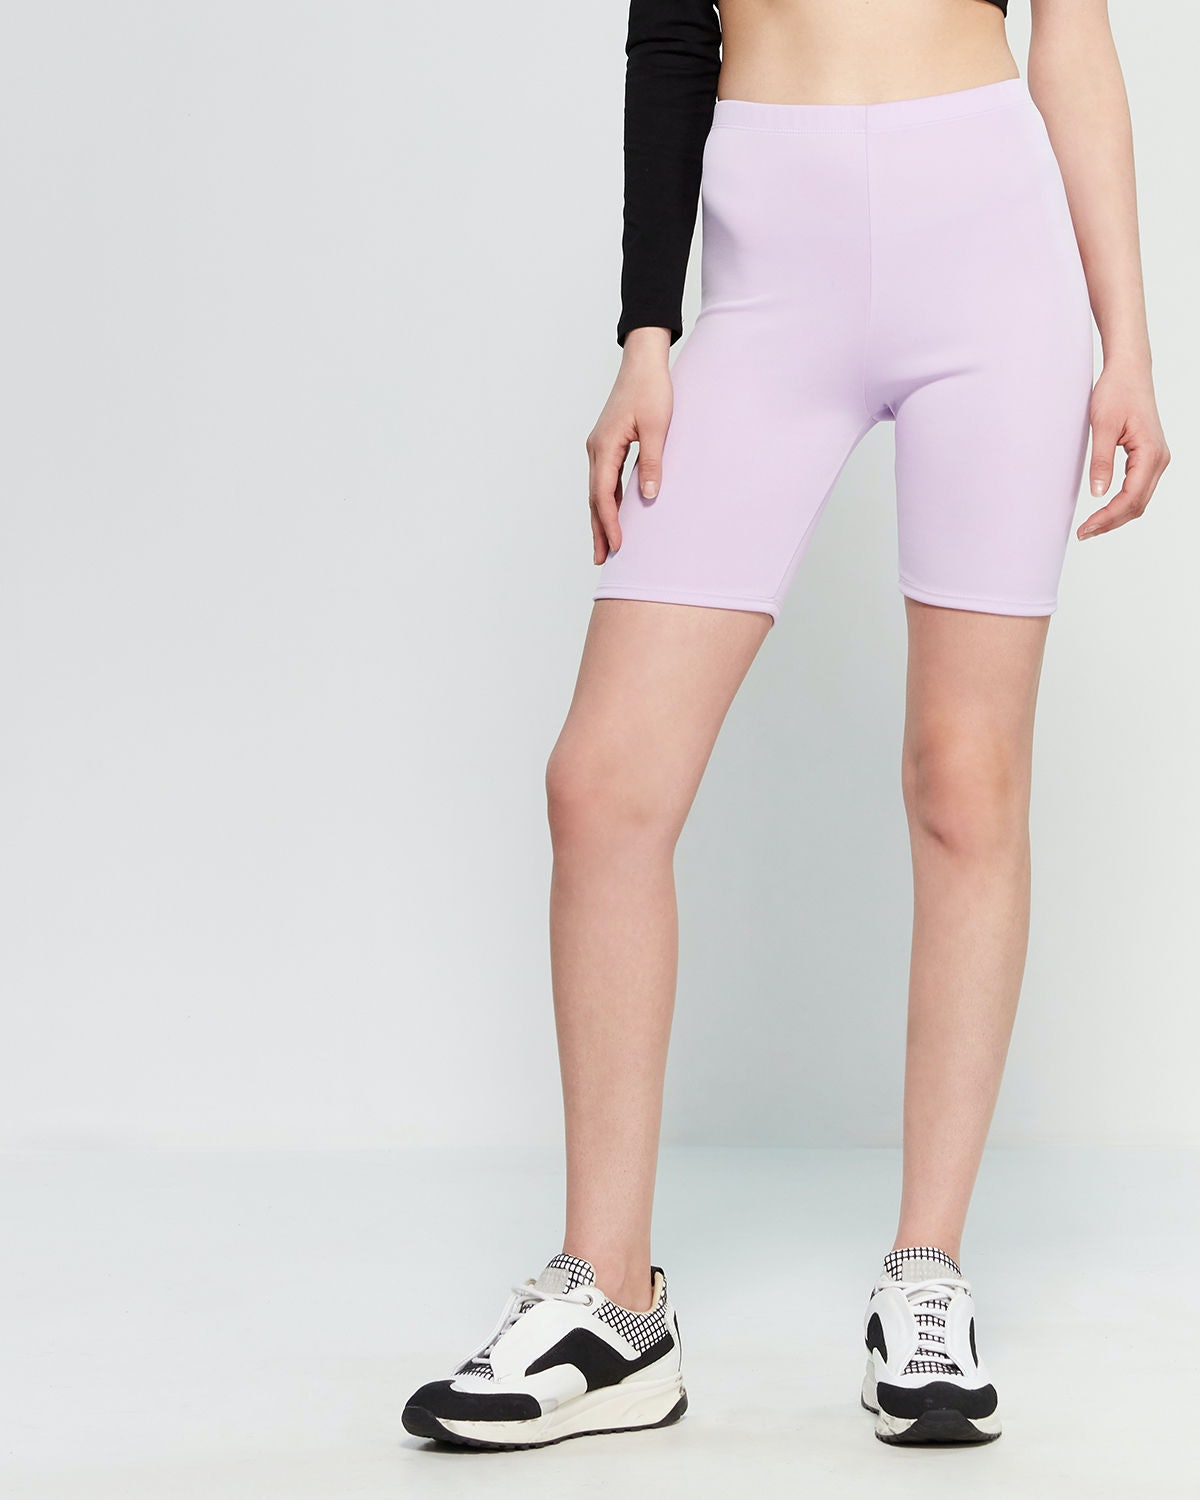 POLLY & ESTHER  Bike Shorts